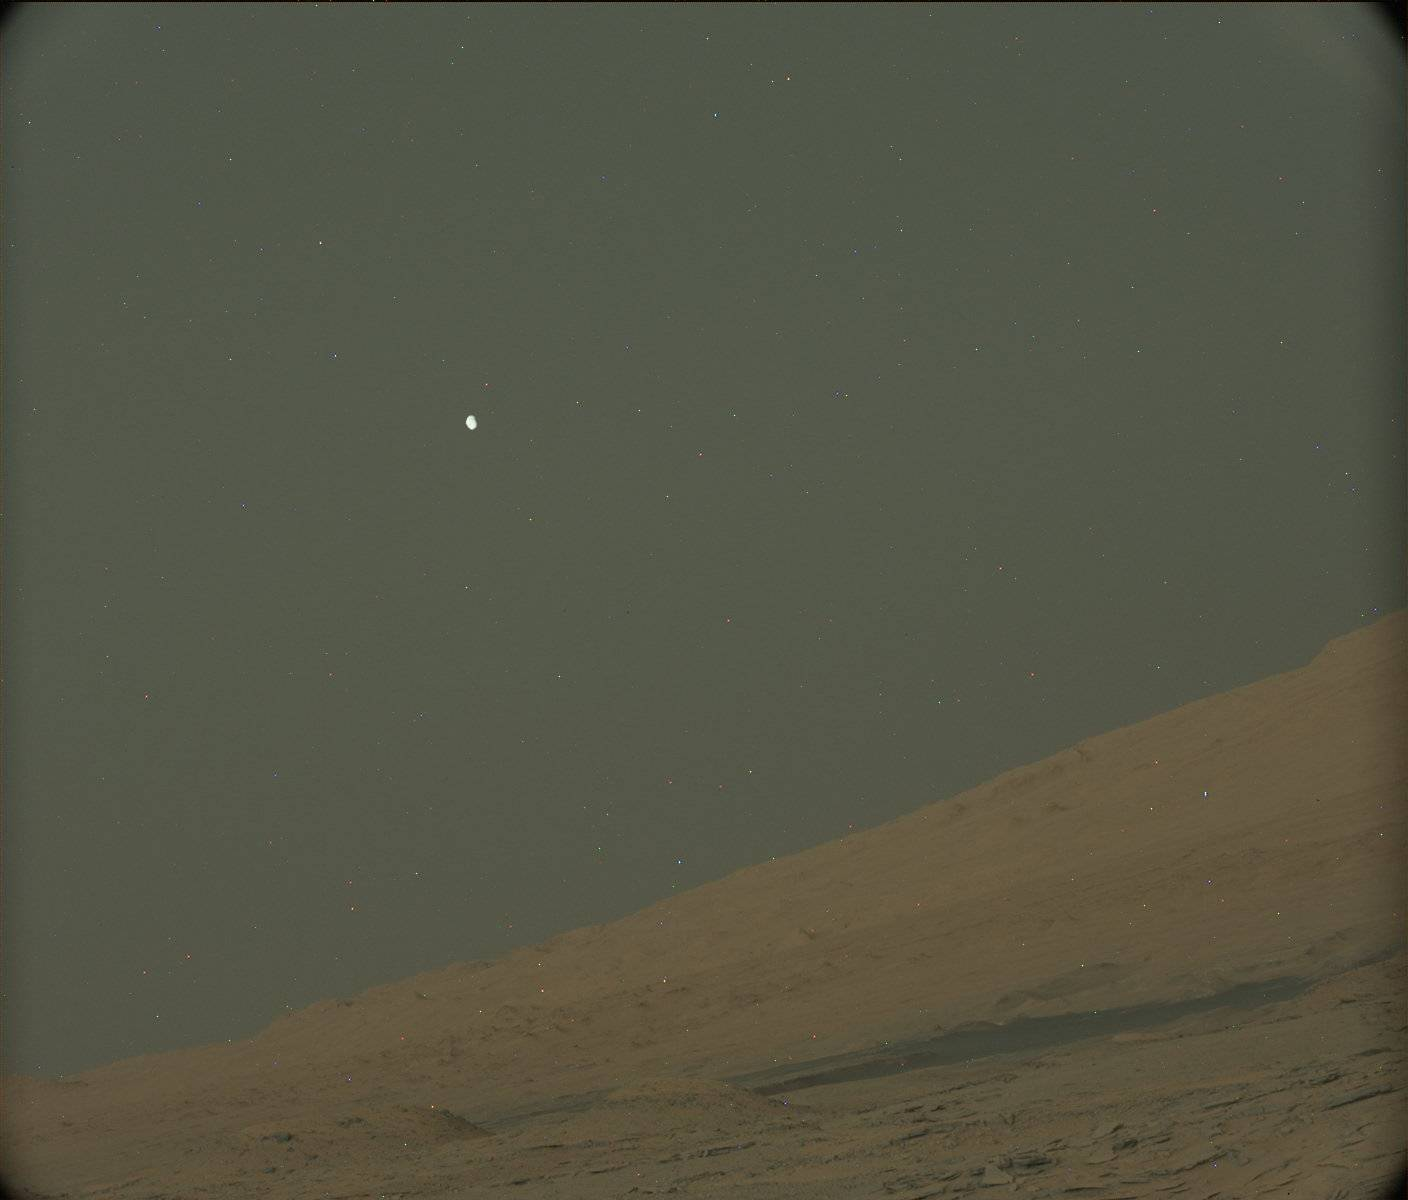 moons from mars curiosity - photo #21